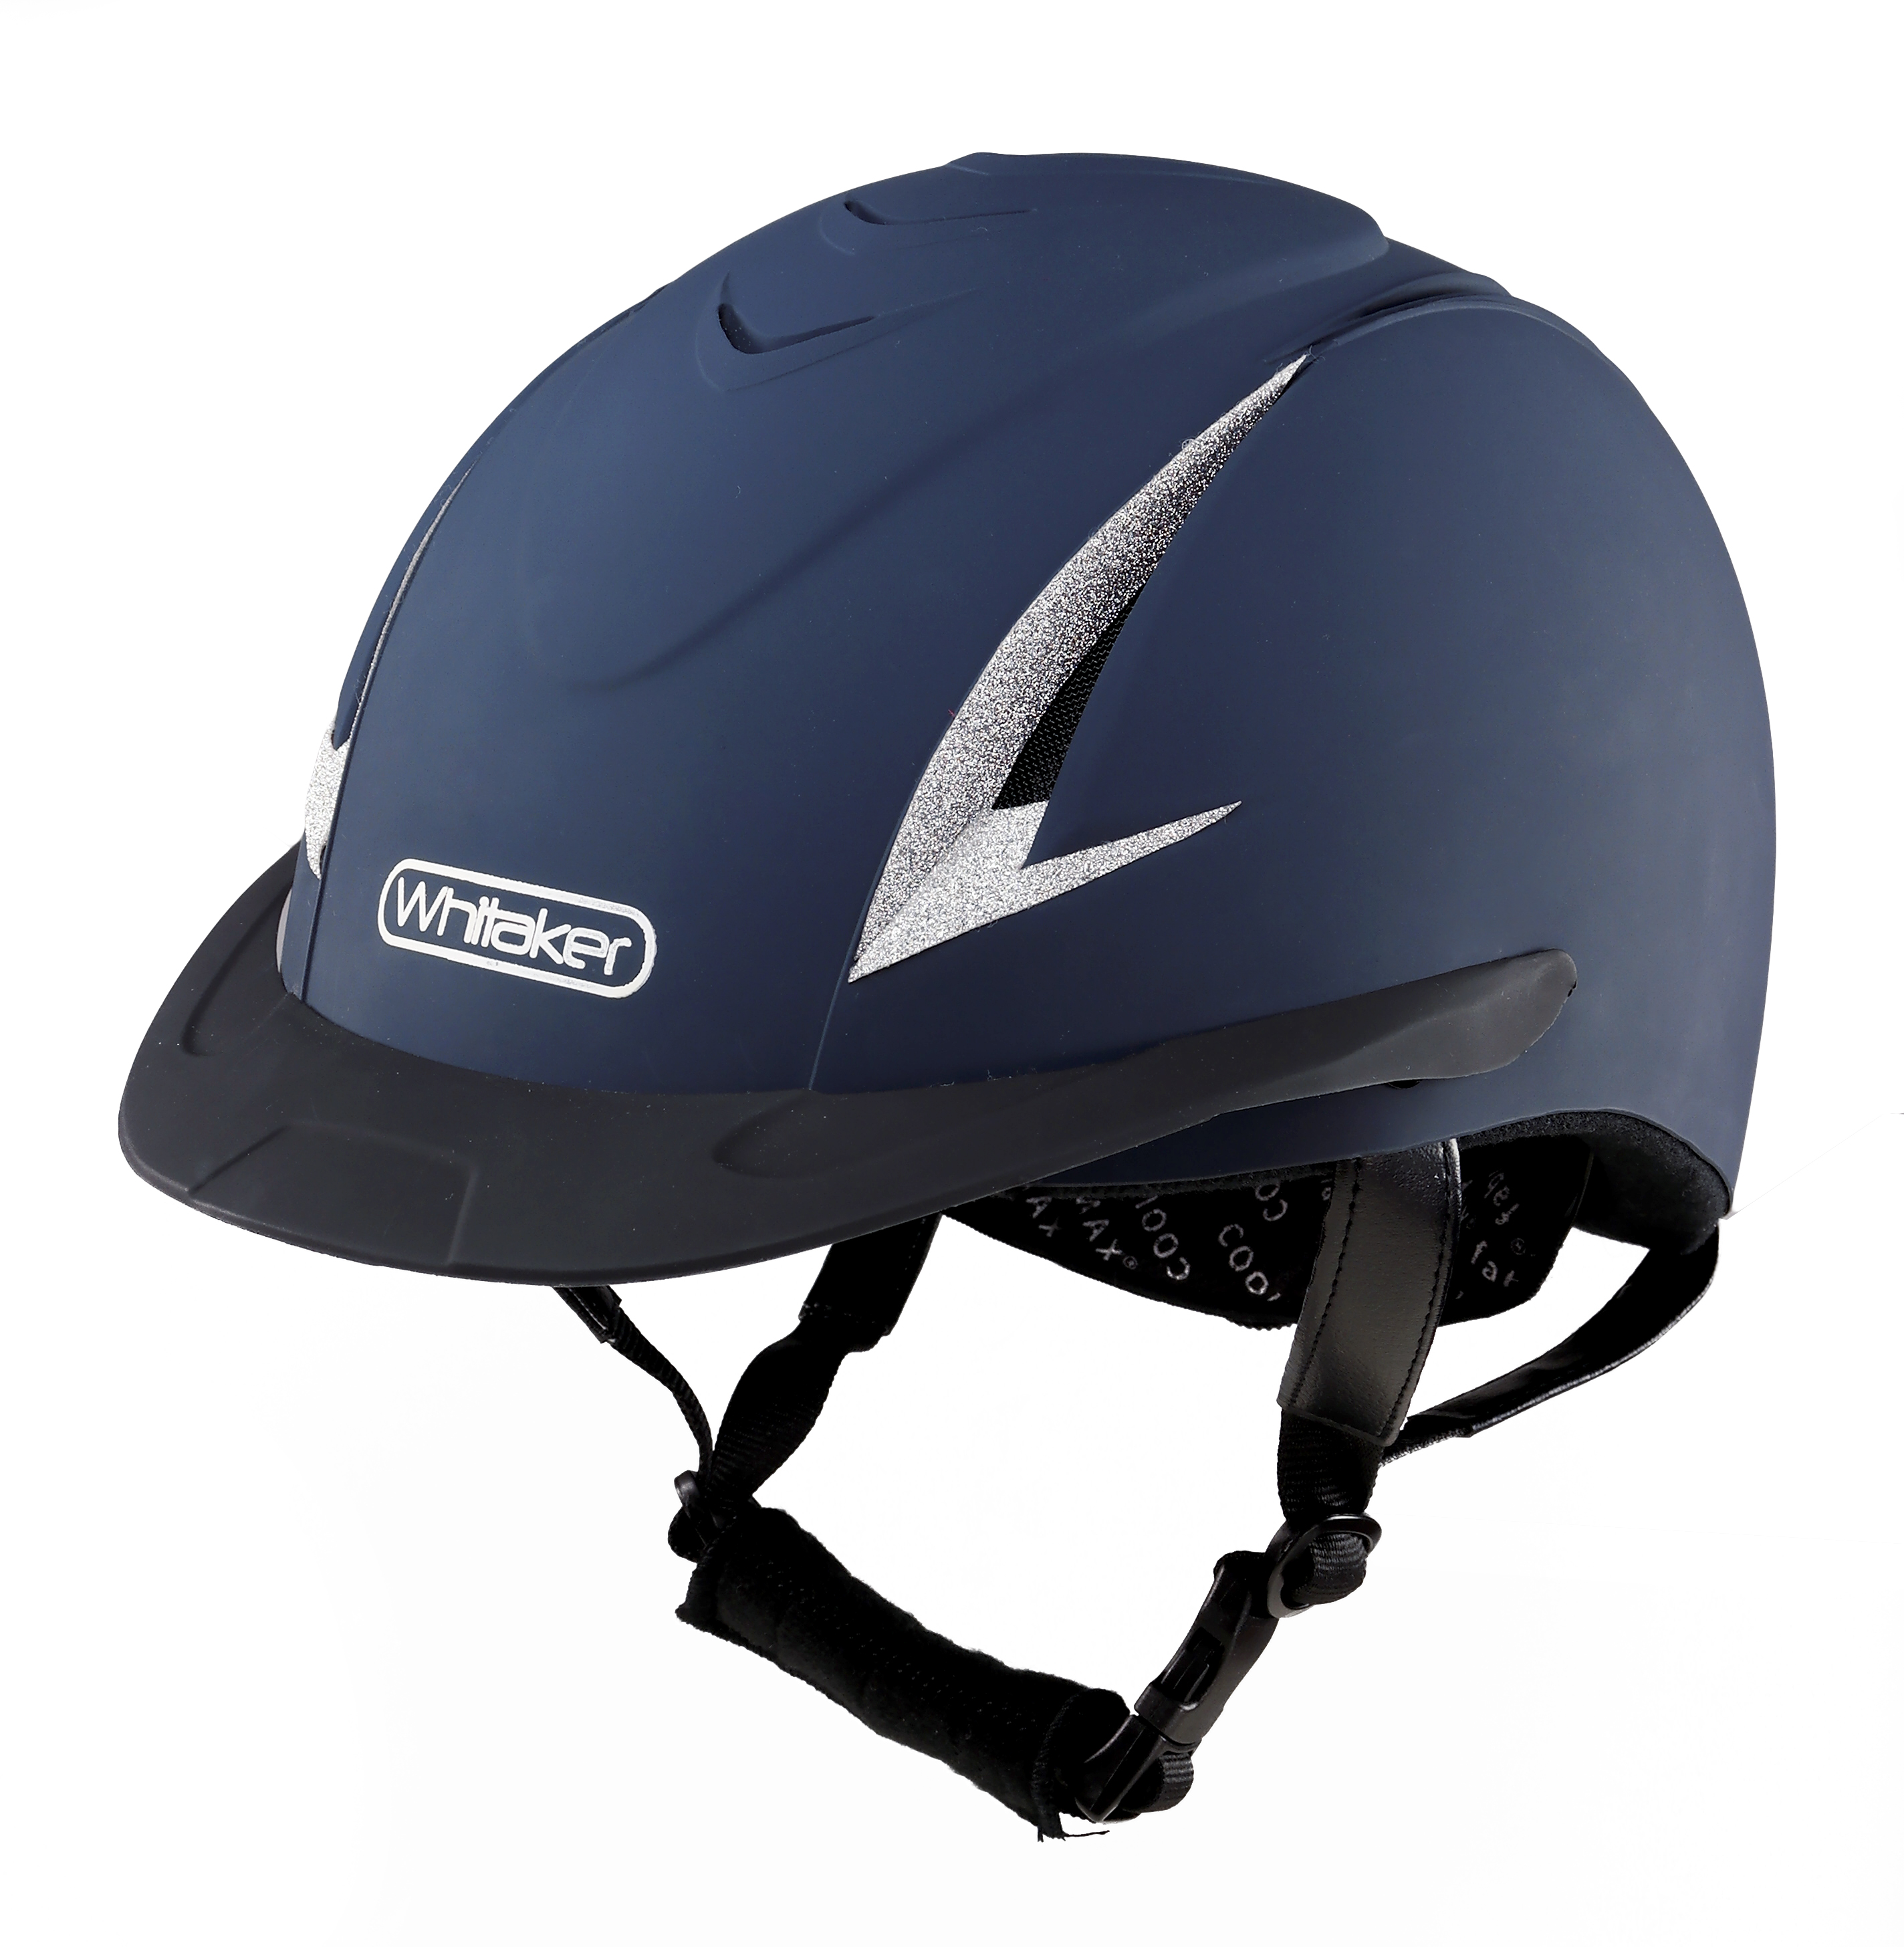 Buying a riding helmet? Essential guidance